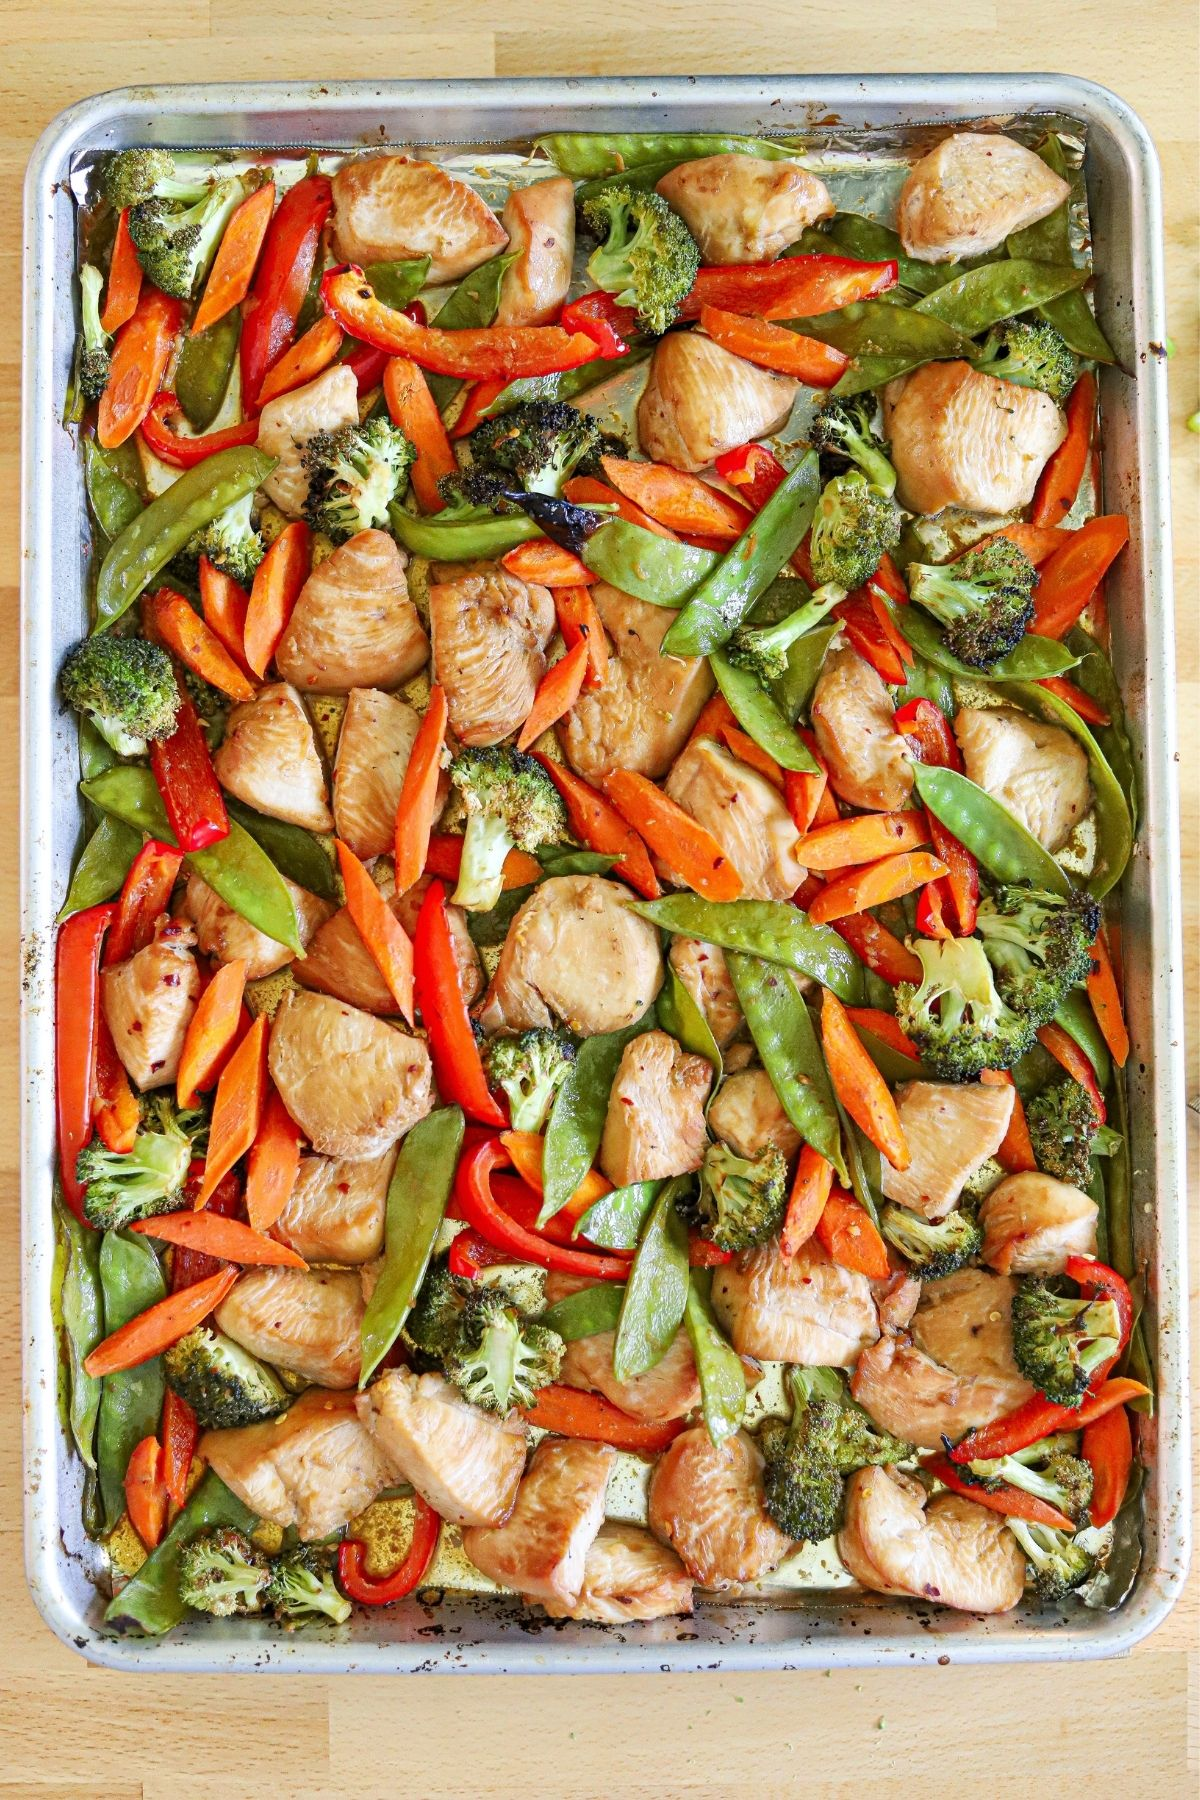 chicken and vegetables stirred together on a sheet pan